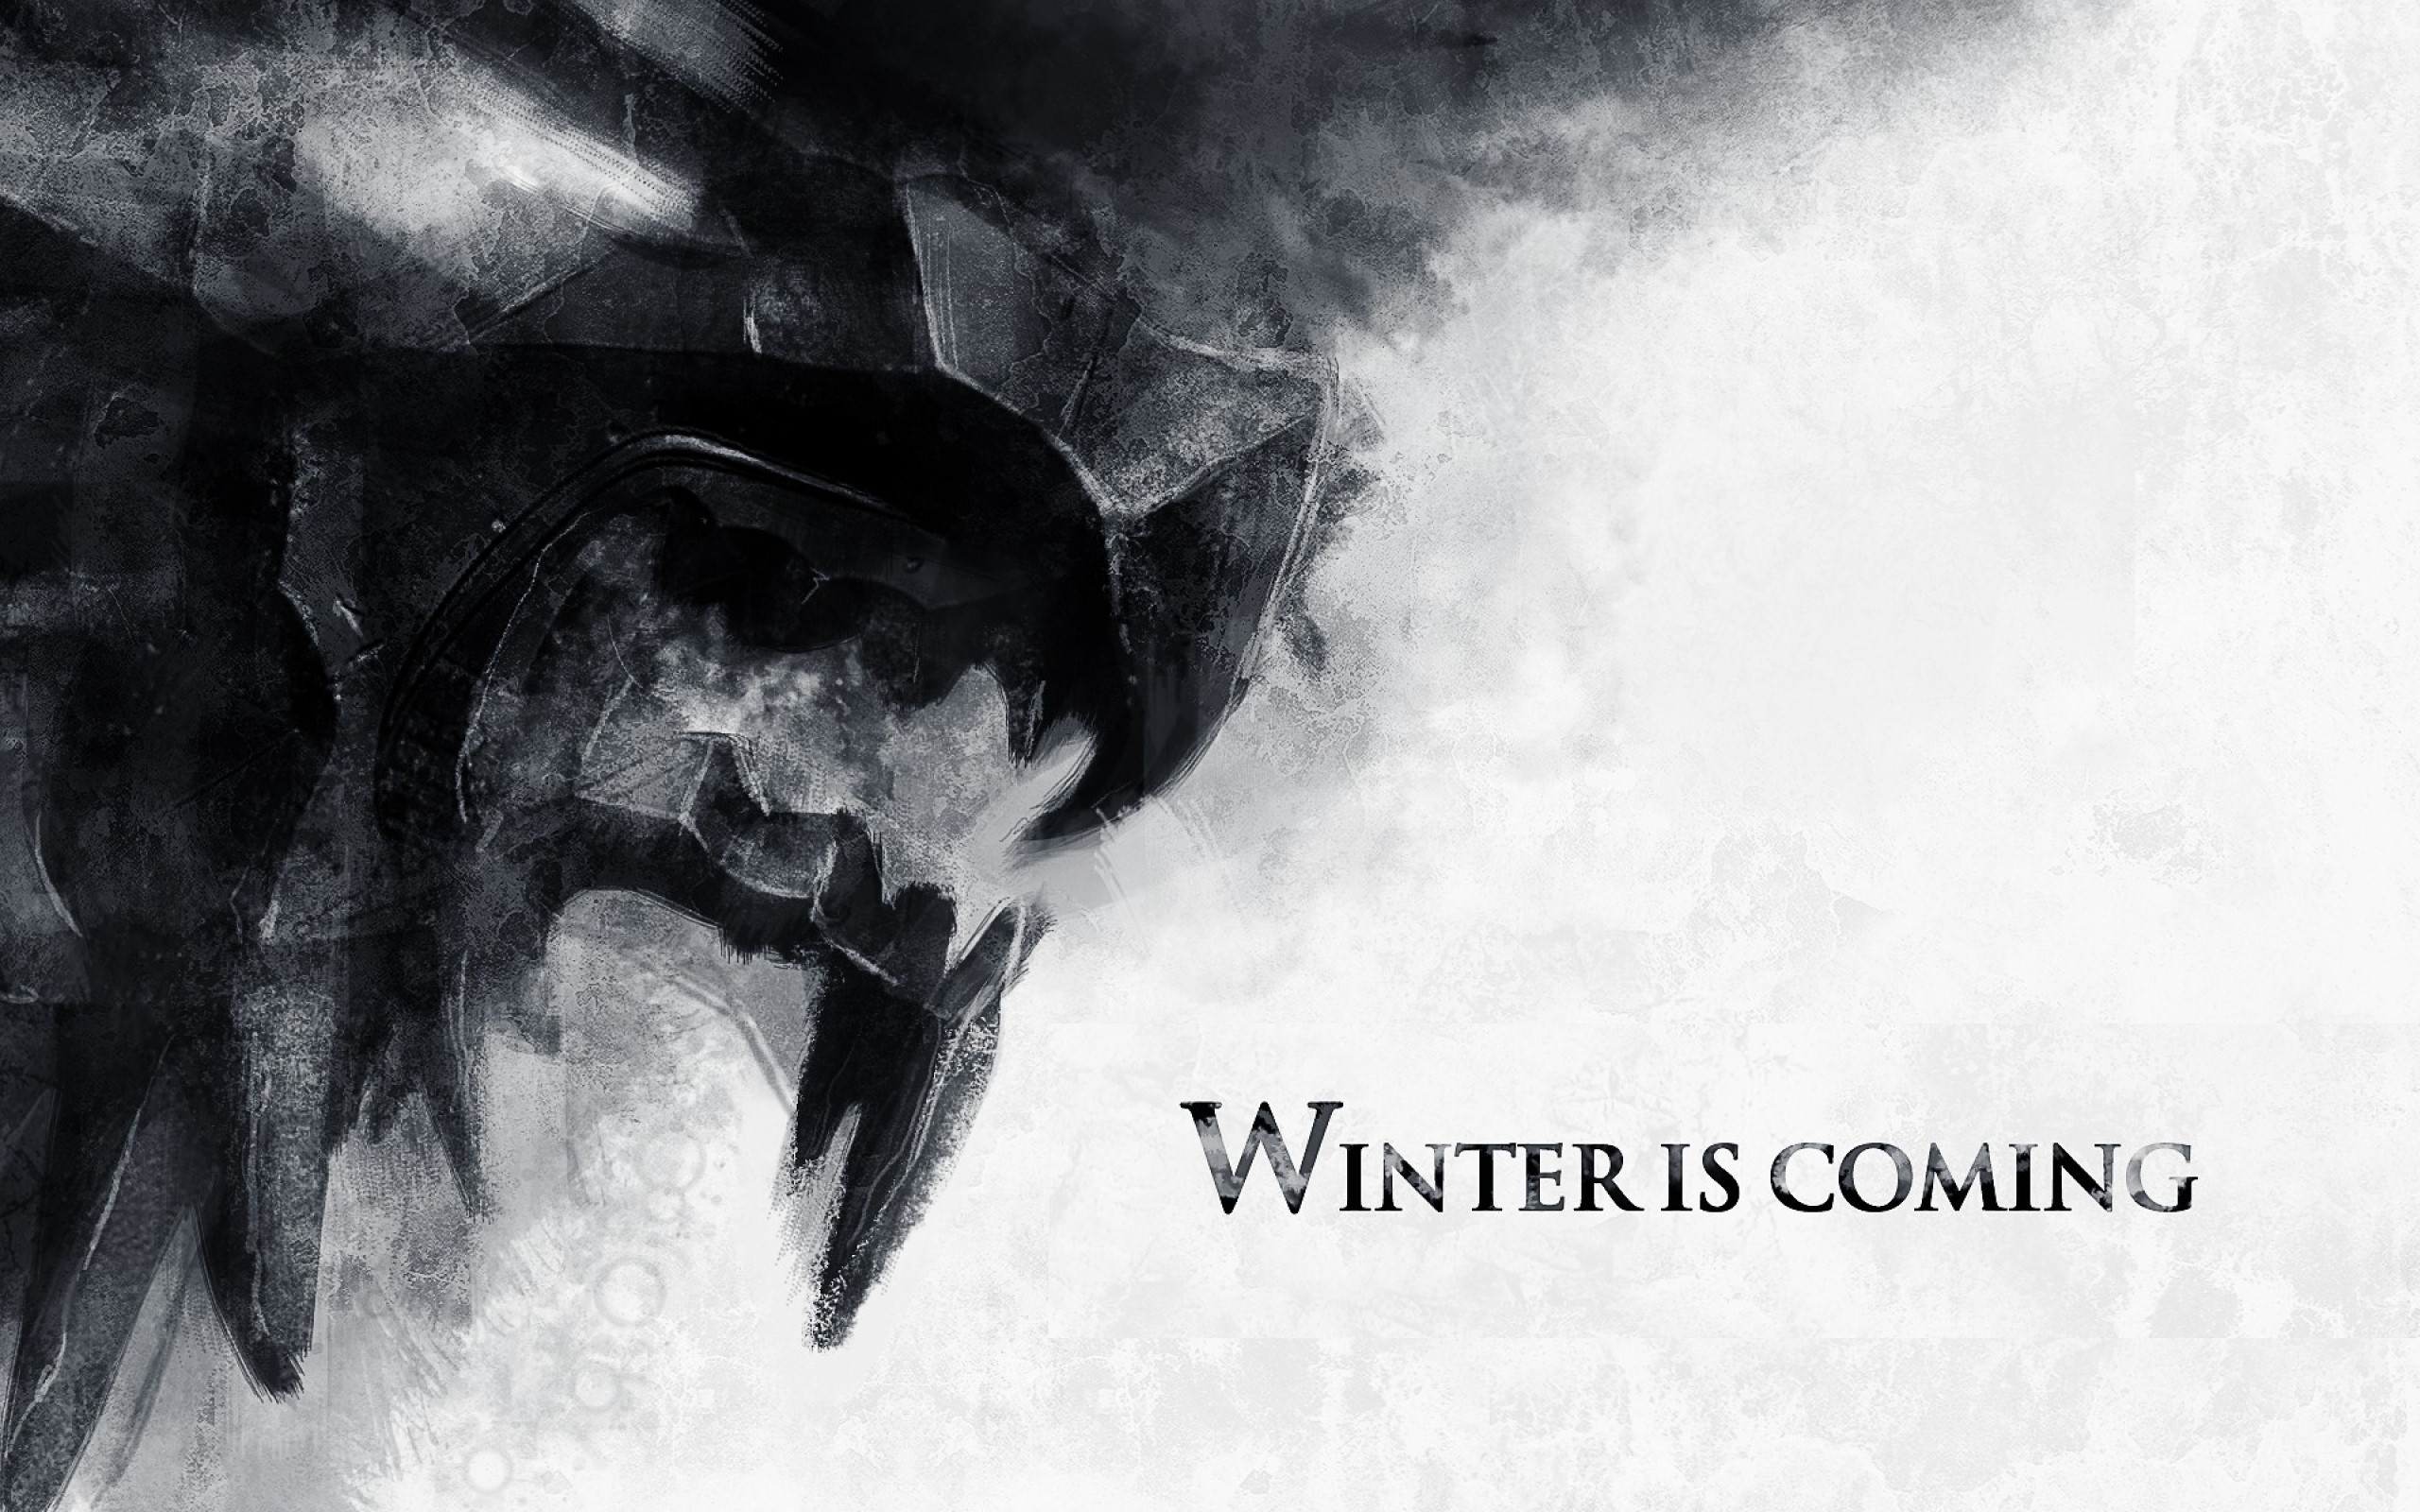 Download Free Game Of Thrones Wallpaper HD #61jo Px 812.72 KB Game